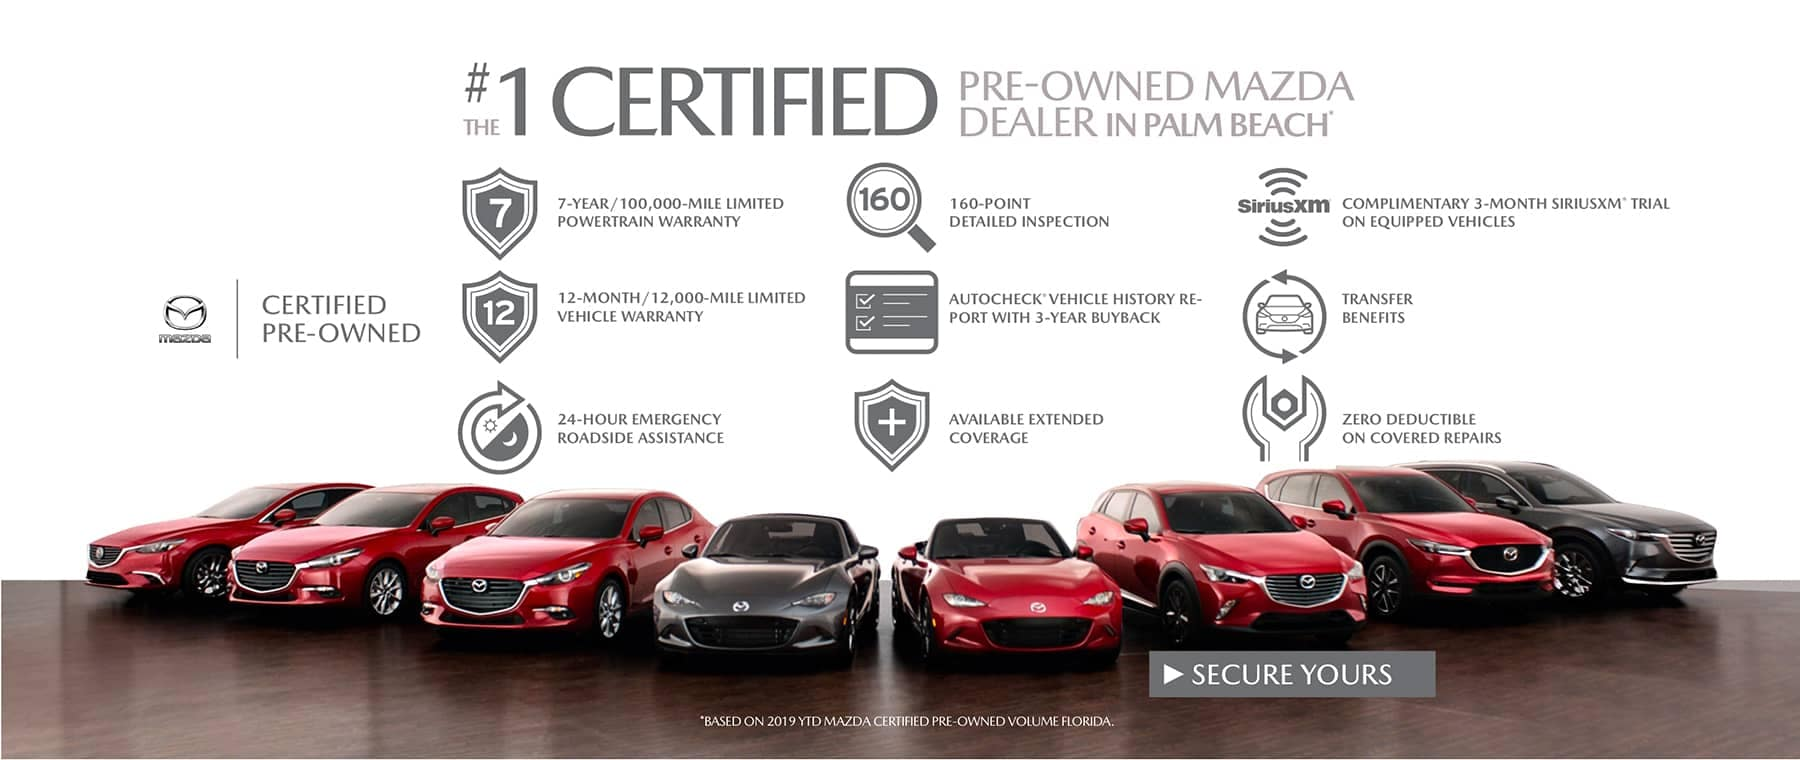 Why-Pre-owned-Mazda-Slide